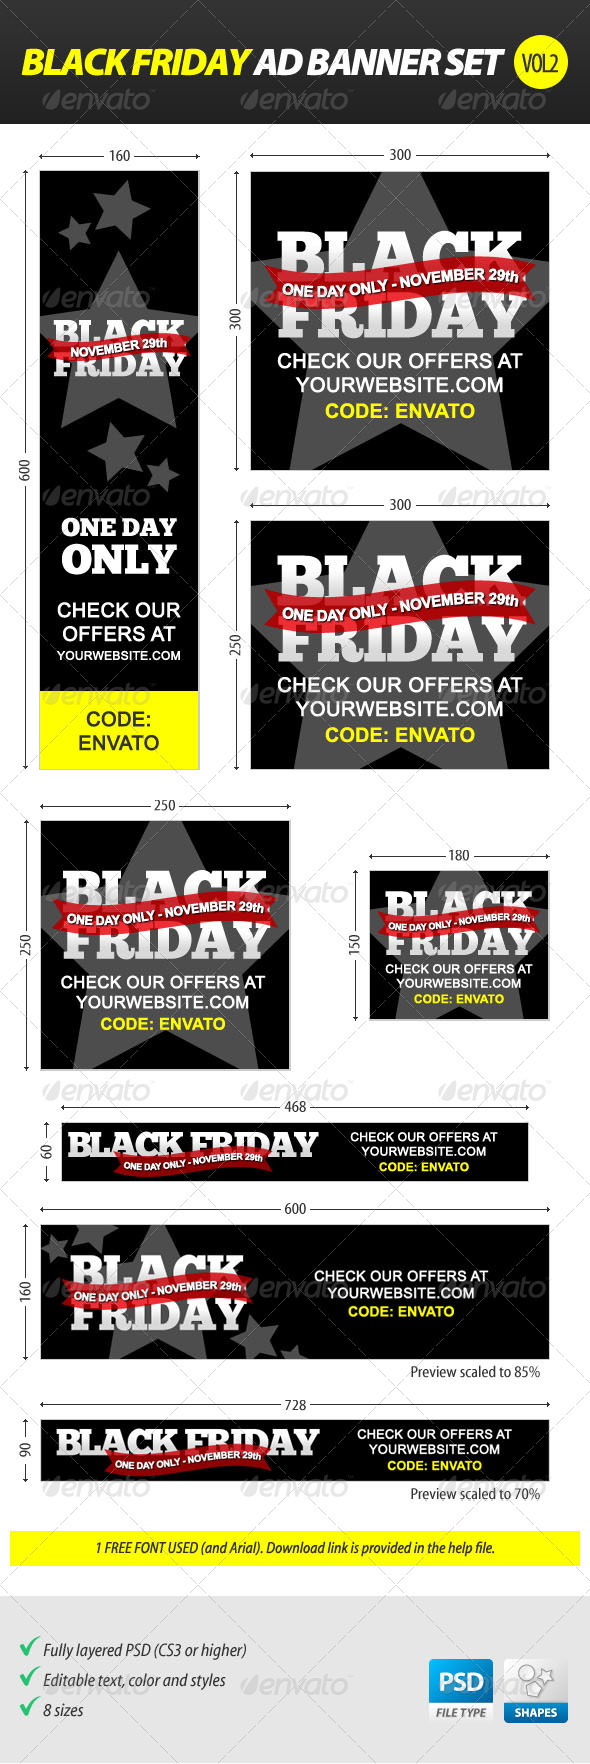 GraphicRiver Black Friday Ad Banner Set vol.2 6264130